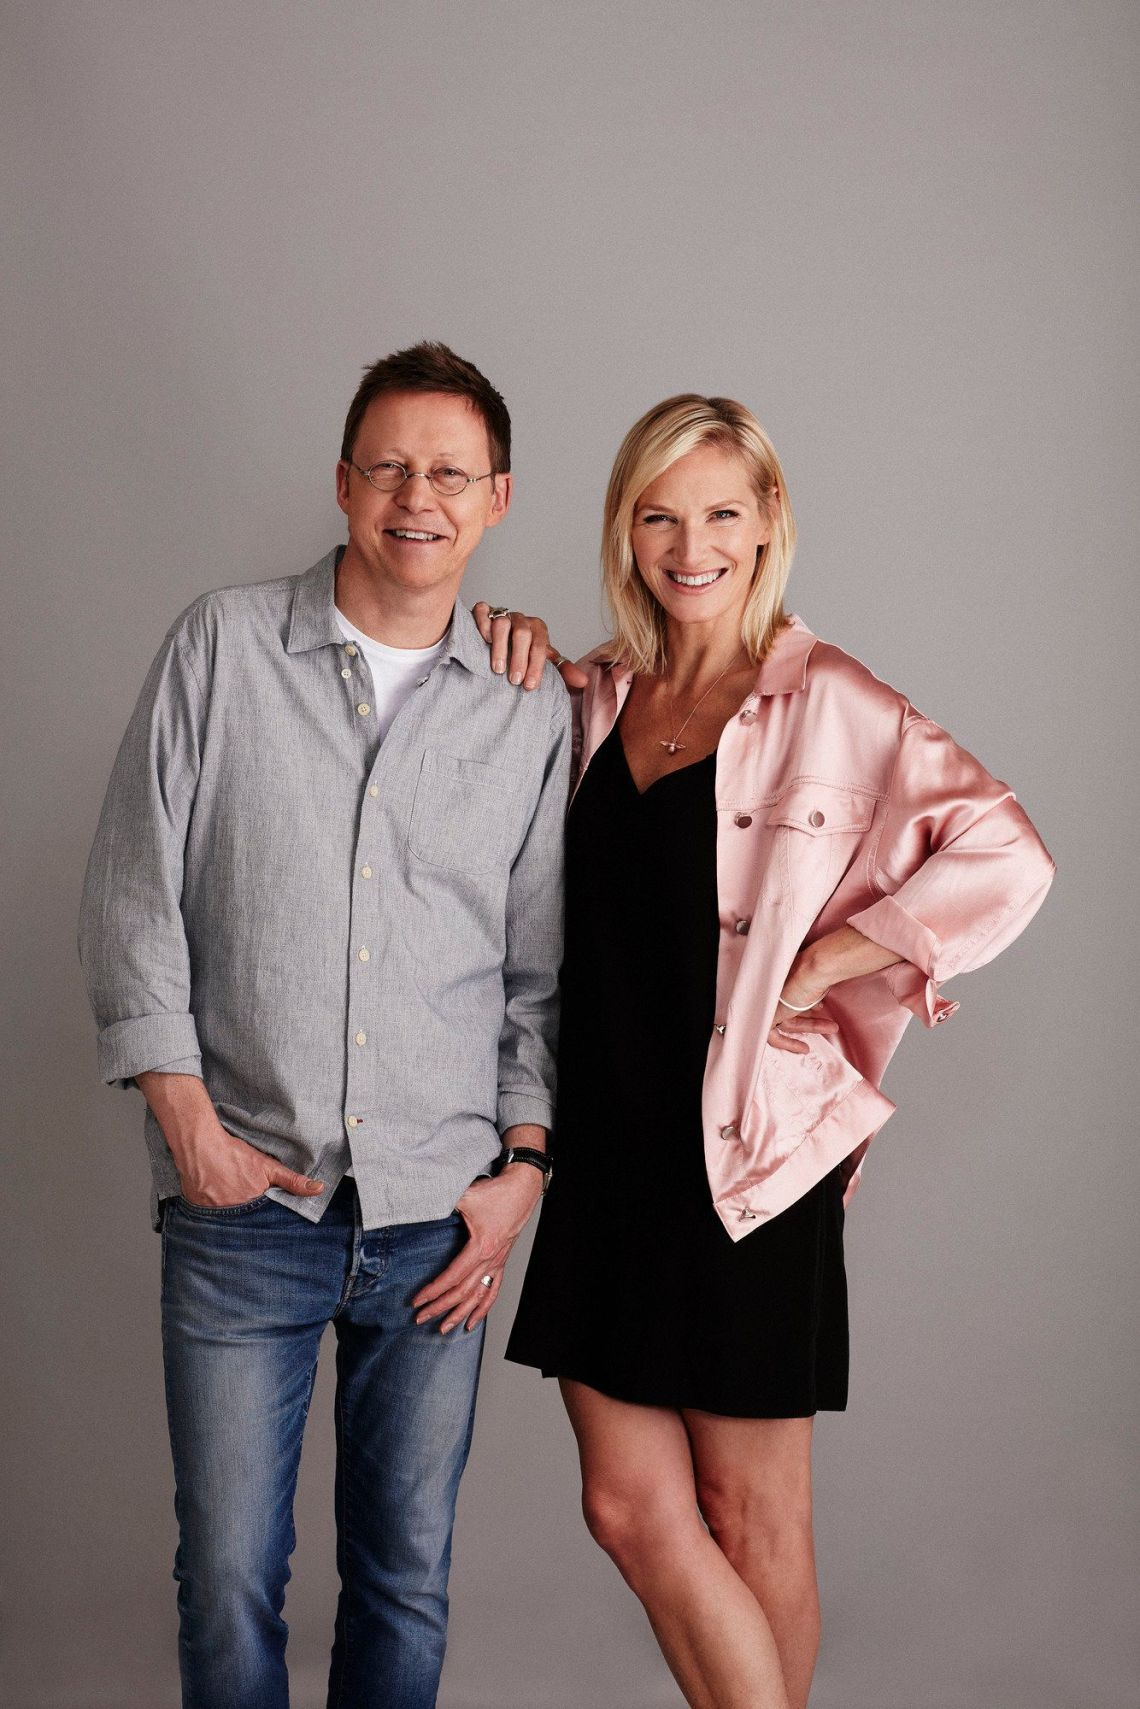 Simon Mayo Calls Out 'Appalling' Abuse Of Jo Whiley After Duo's Radio 2 Drivetime Show Is Axed